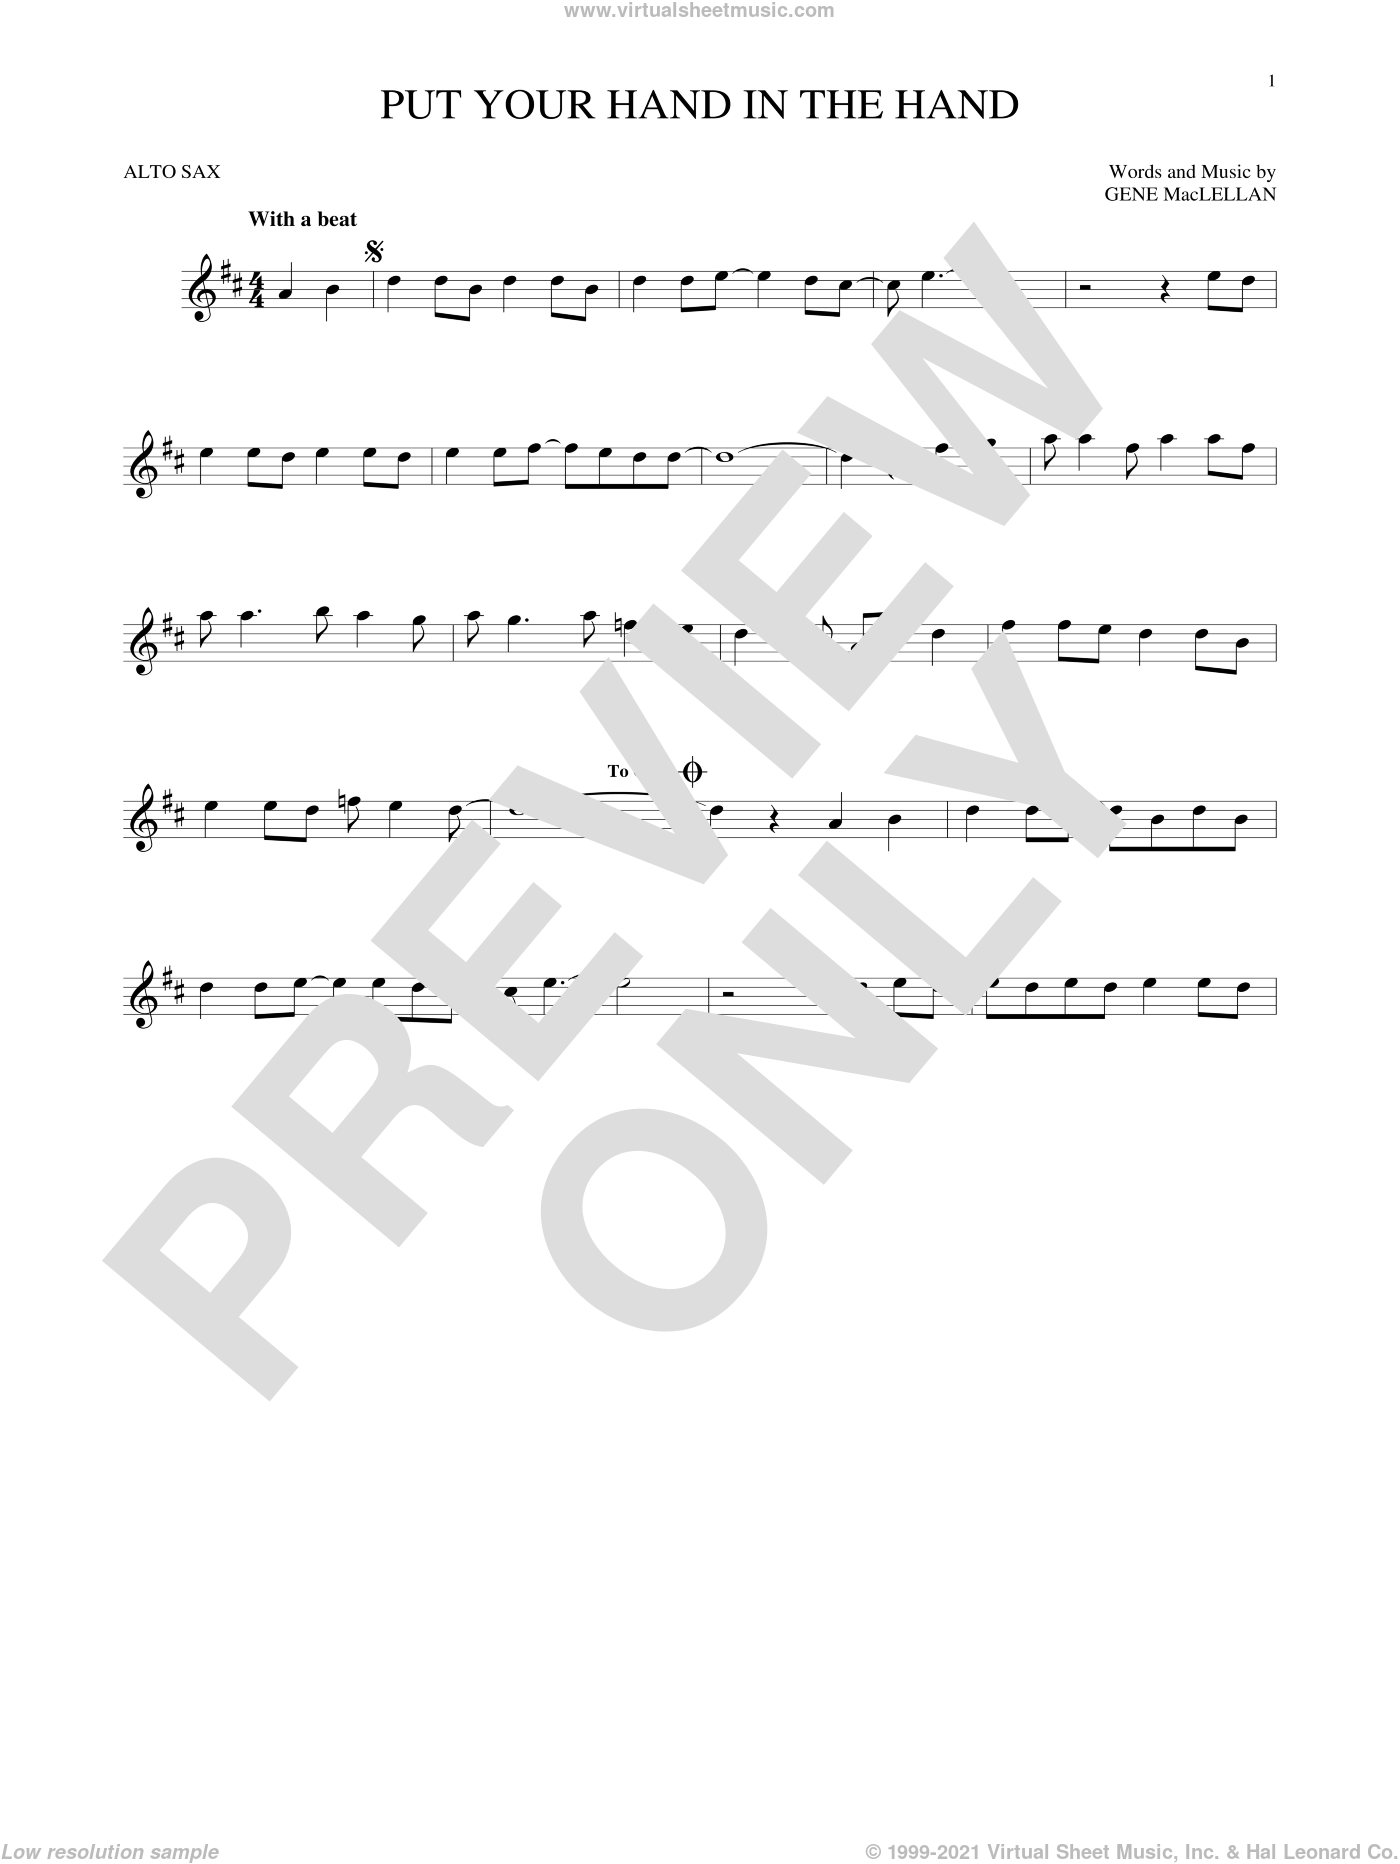 Put Your Hand In The Hand sheet music for alto saxophone solo by Gene MacLellan and MacLellan and Ocean, intermediate skill level